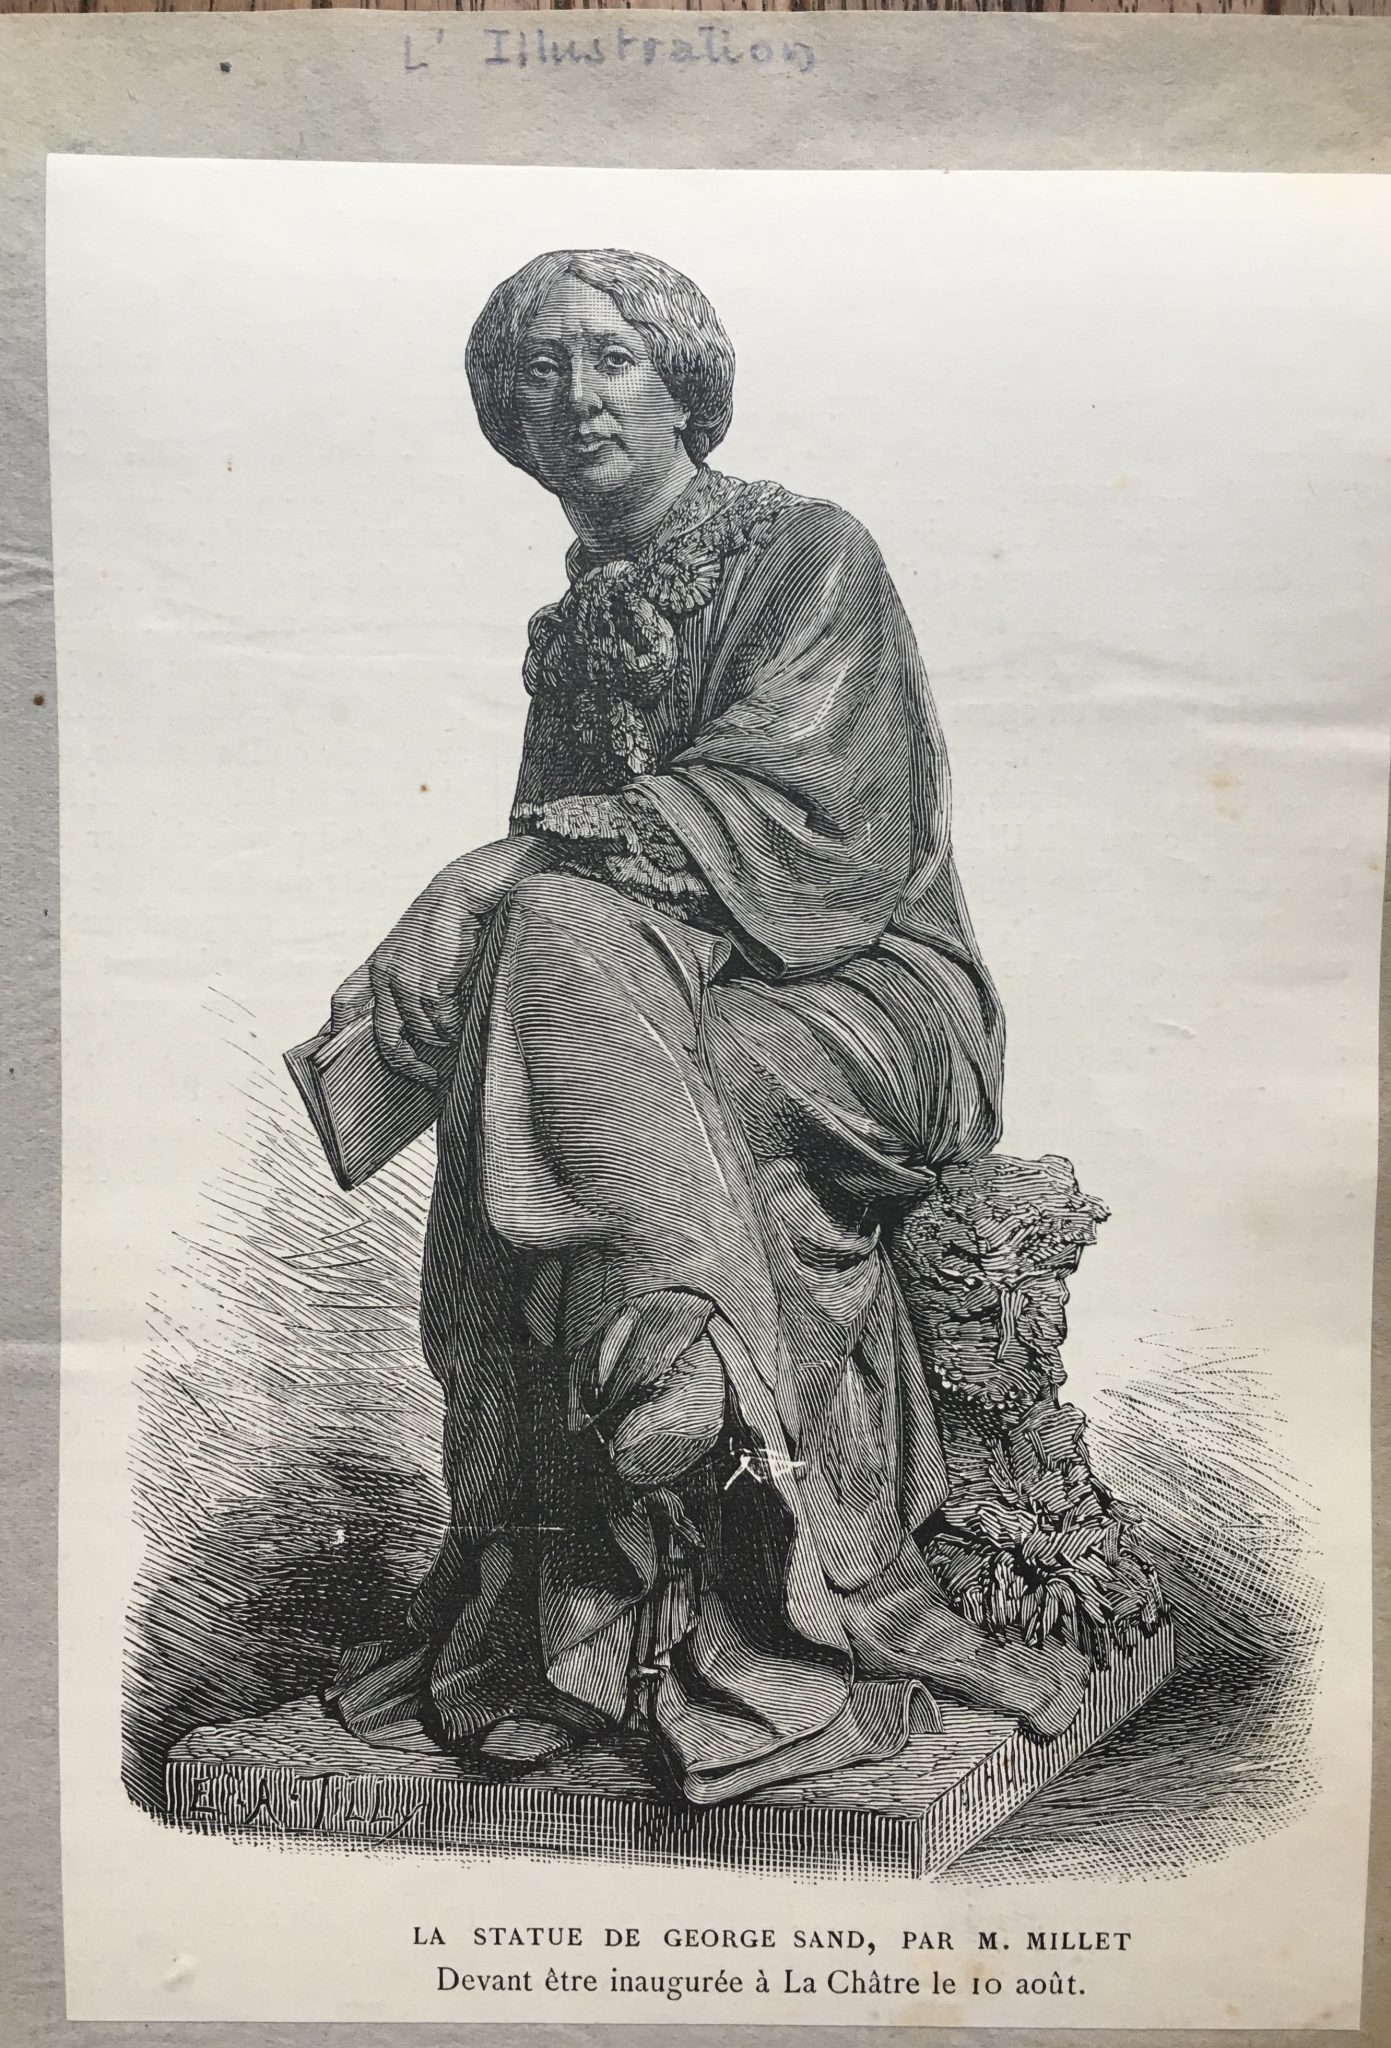 L'Illustration, La Statue